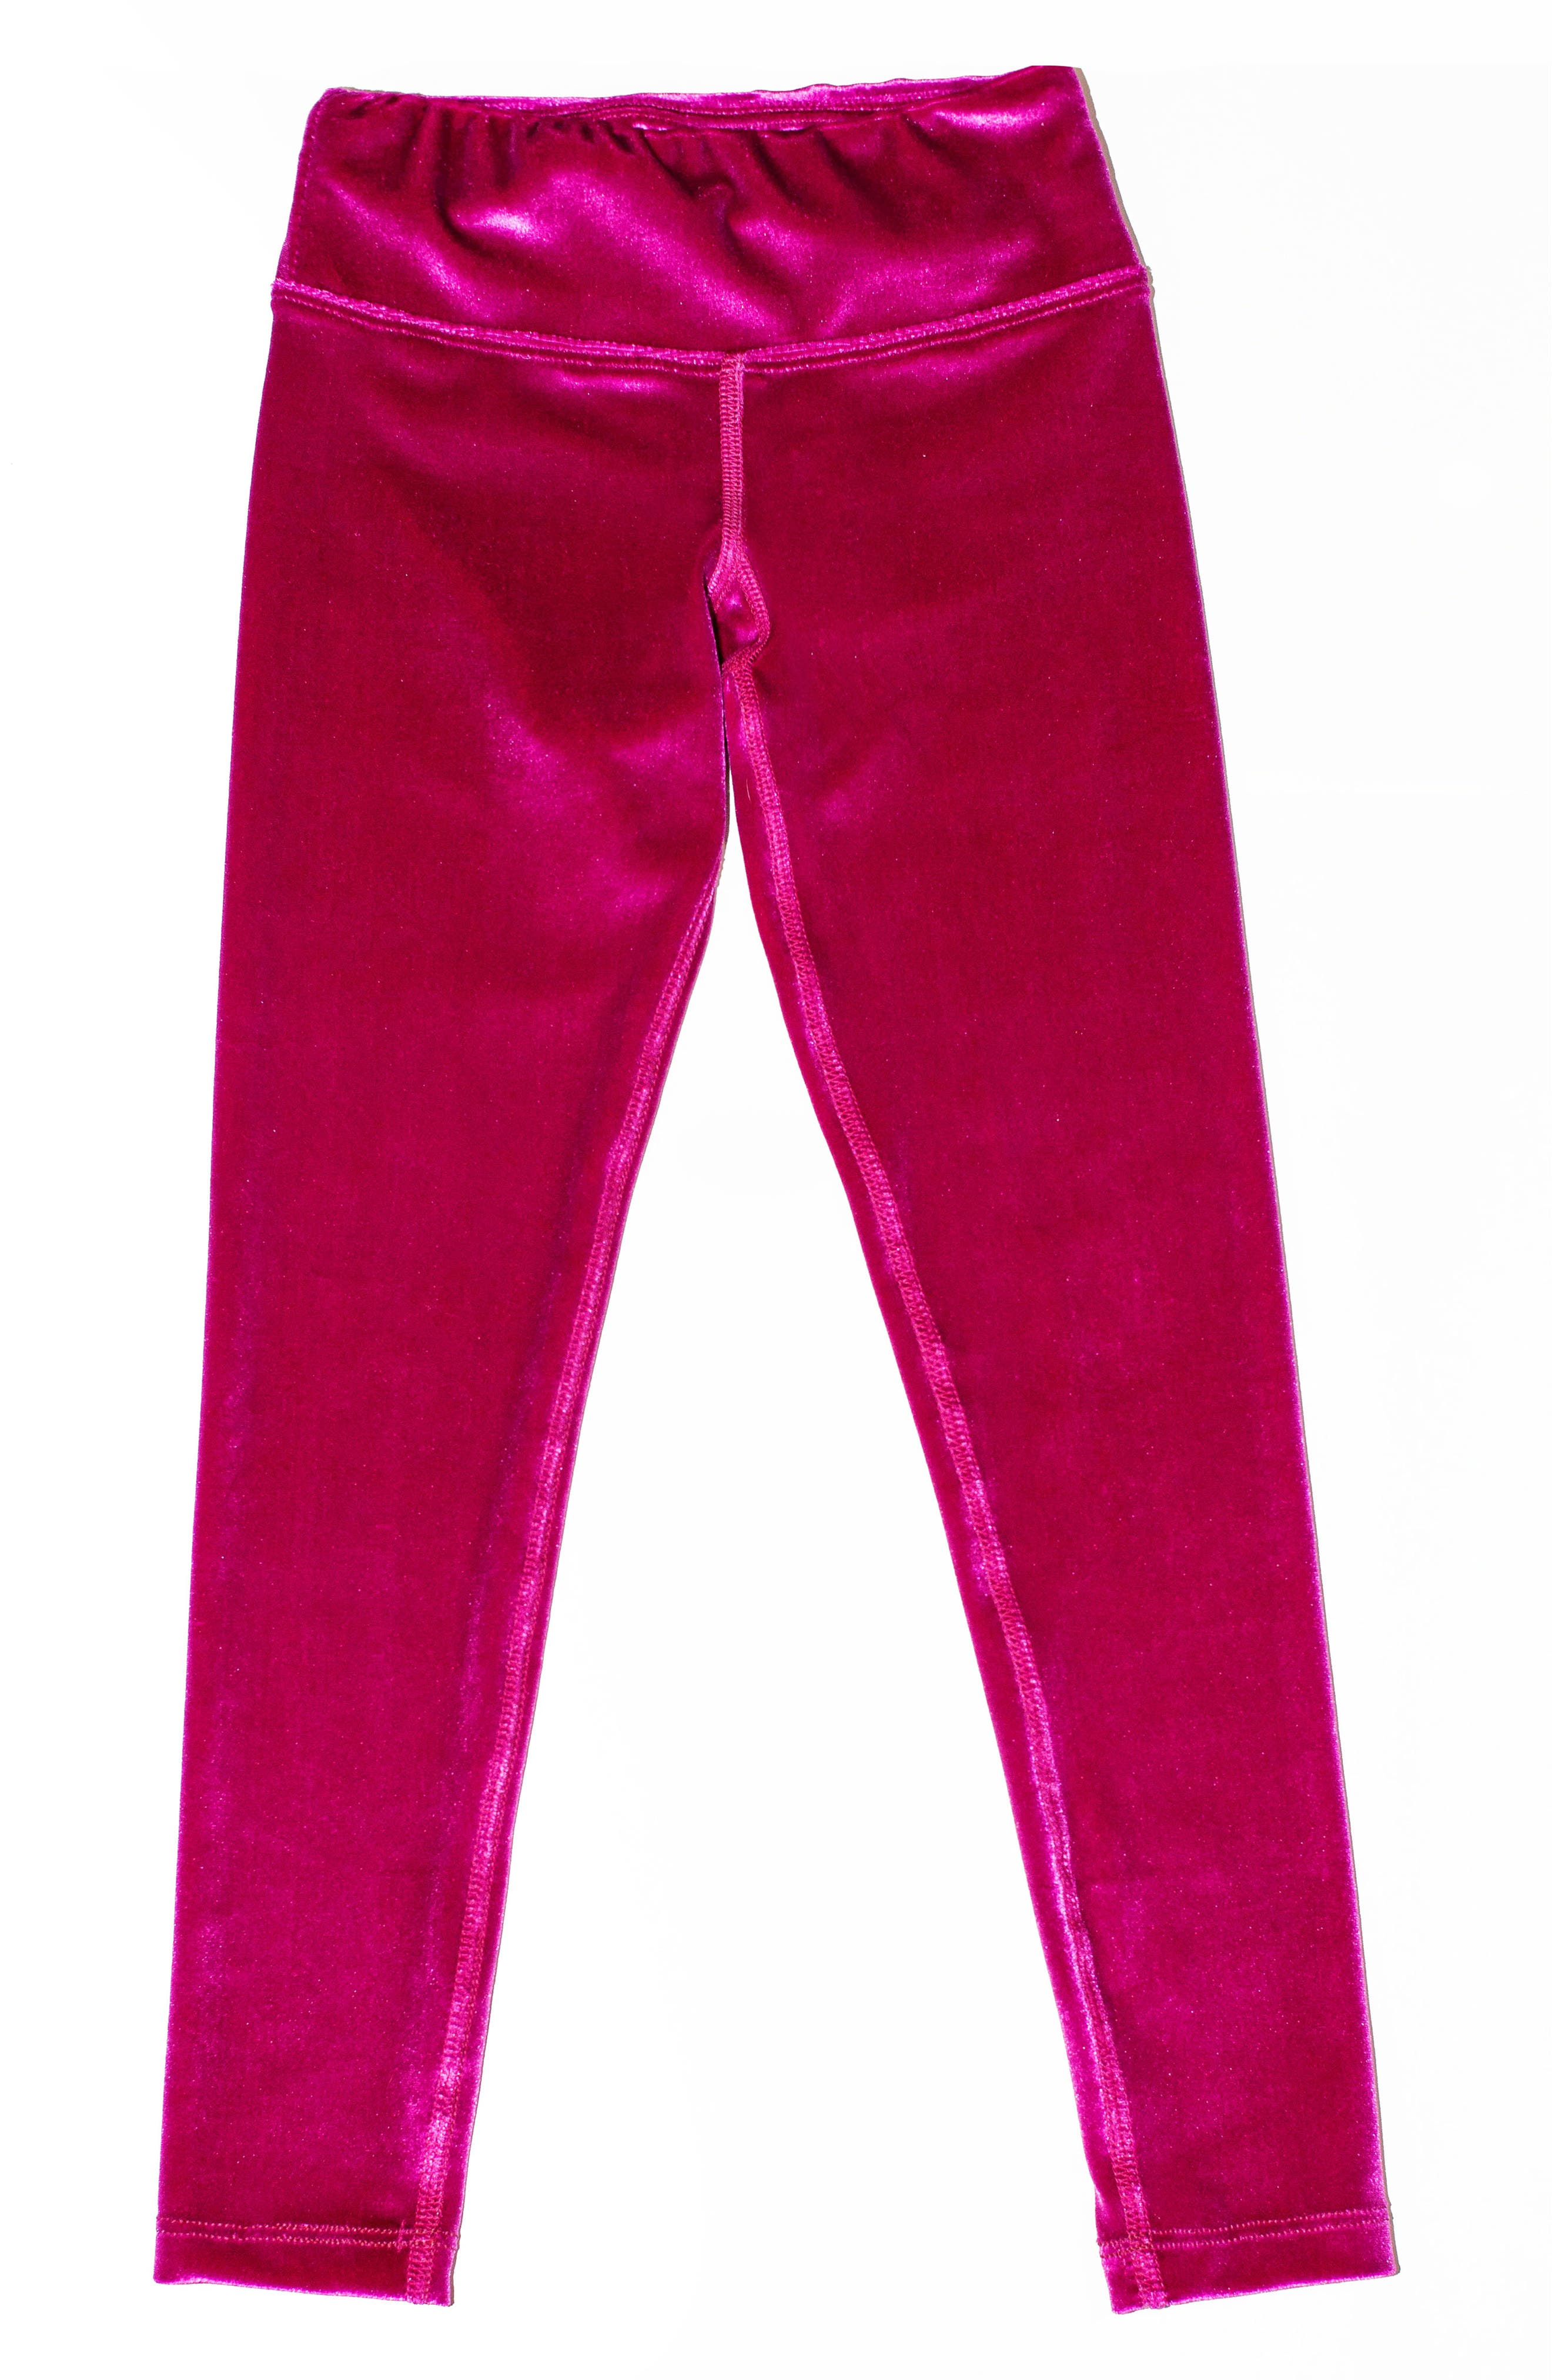 Velour Leggings,                             Main thumbnail 1, color,                             Wild Rose